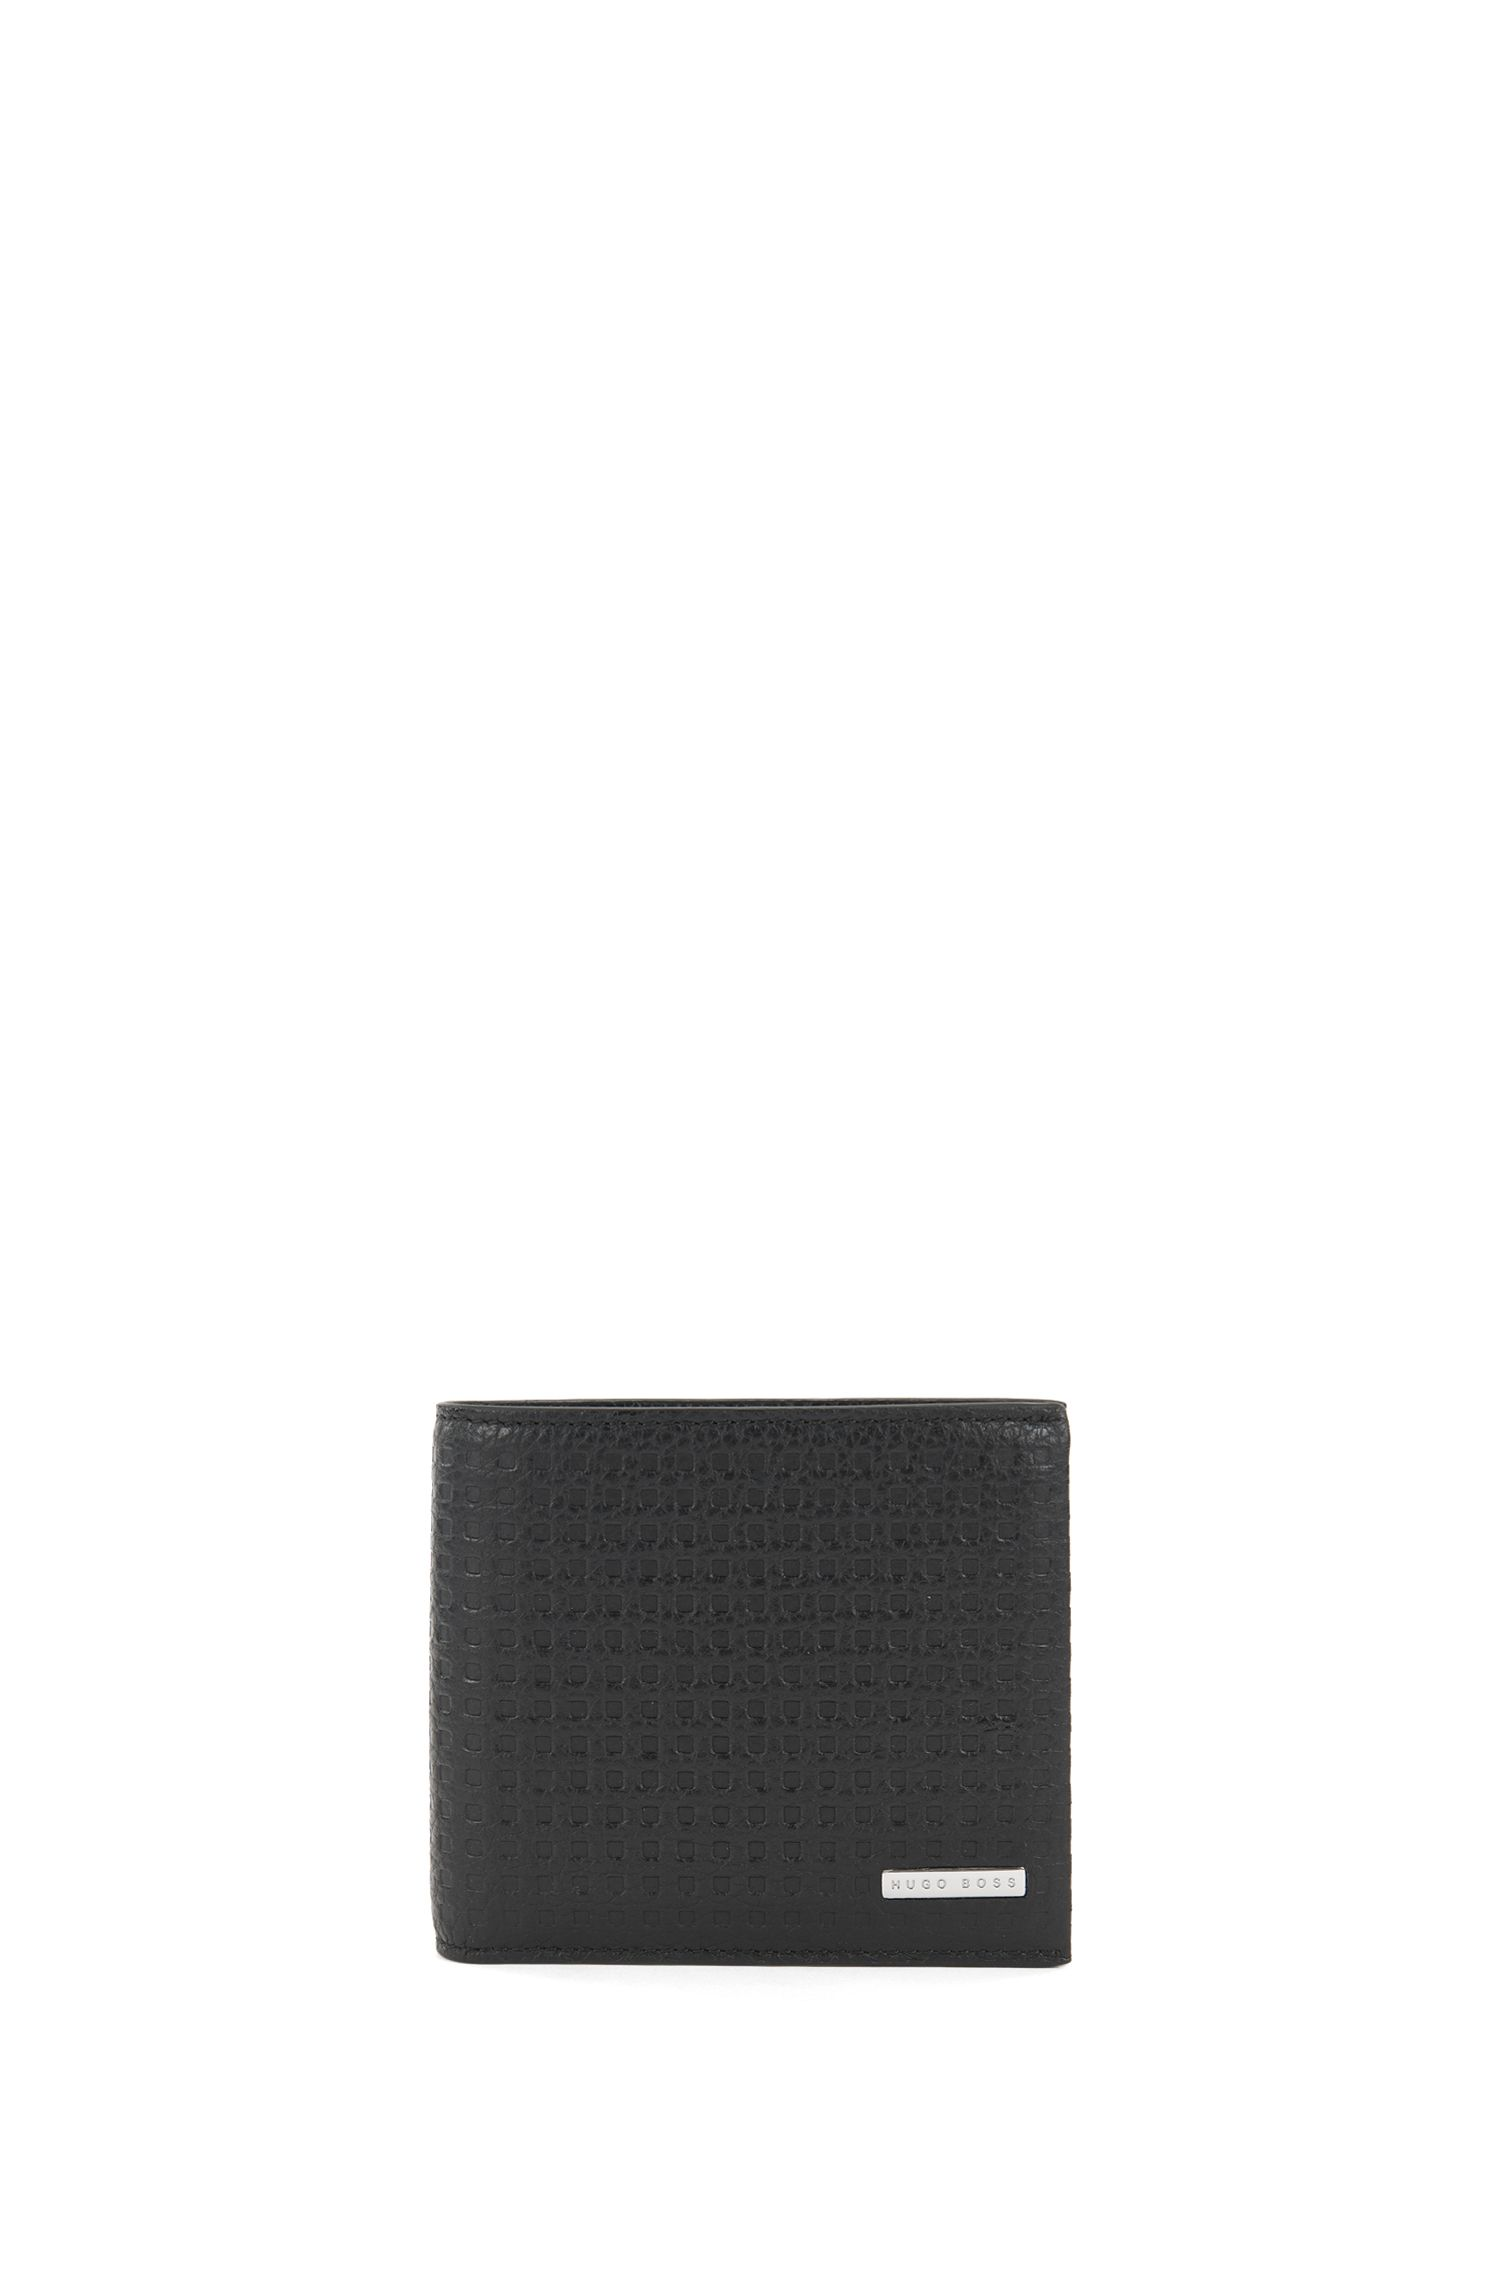 Perforated Leather Billfold Wallet | Marseille